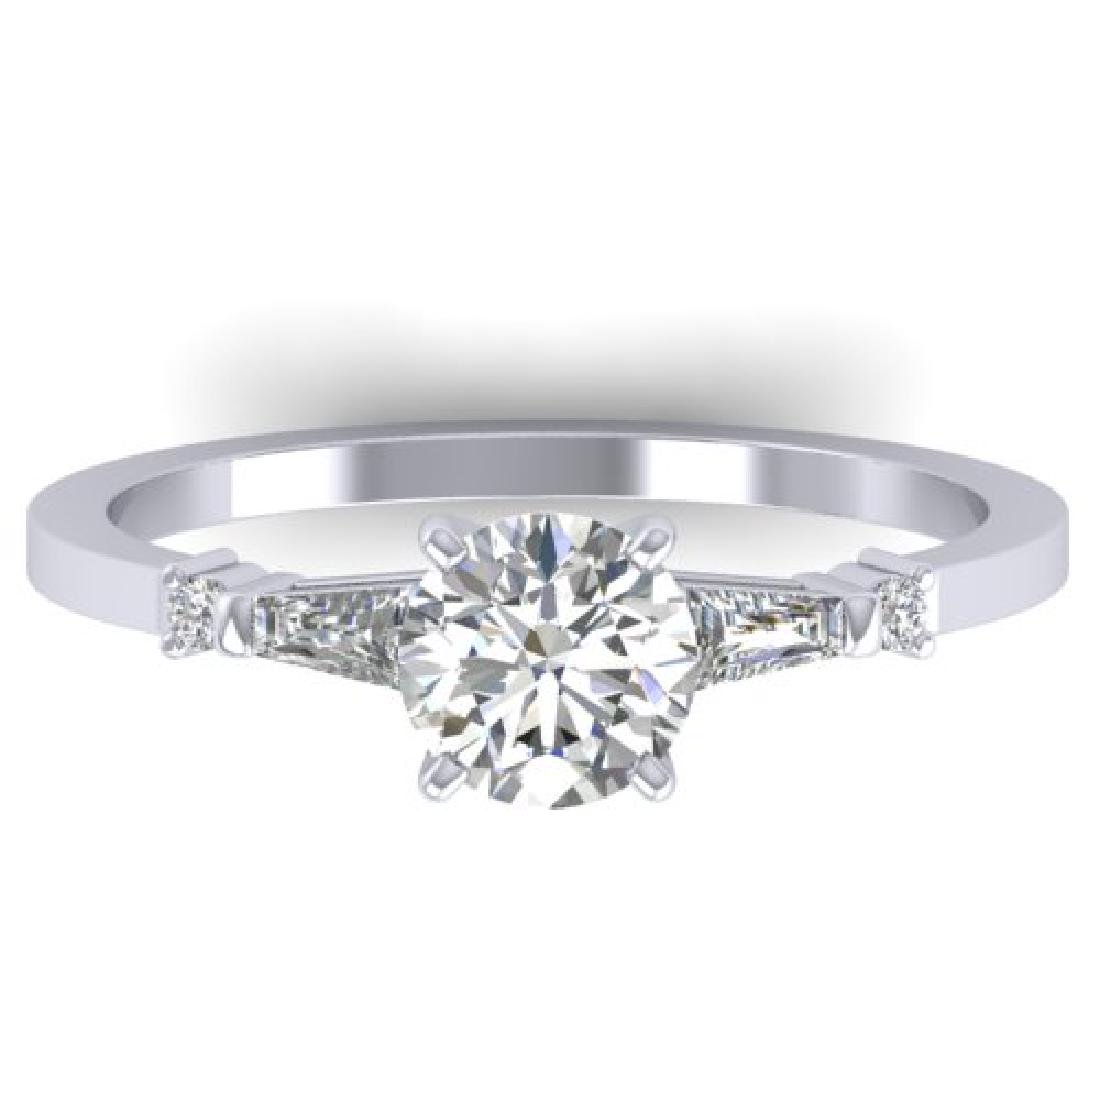 1.04 CTW Certified VS/SI Diamond Solitaire Ring 18K